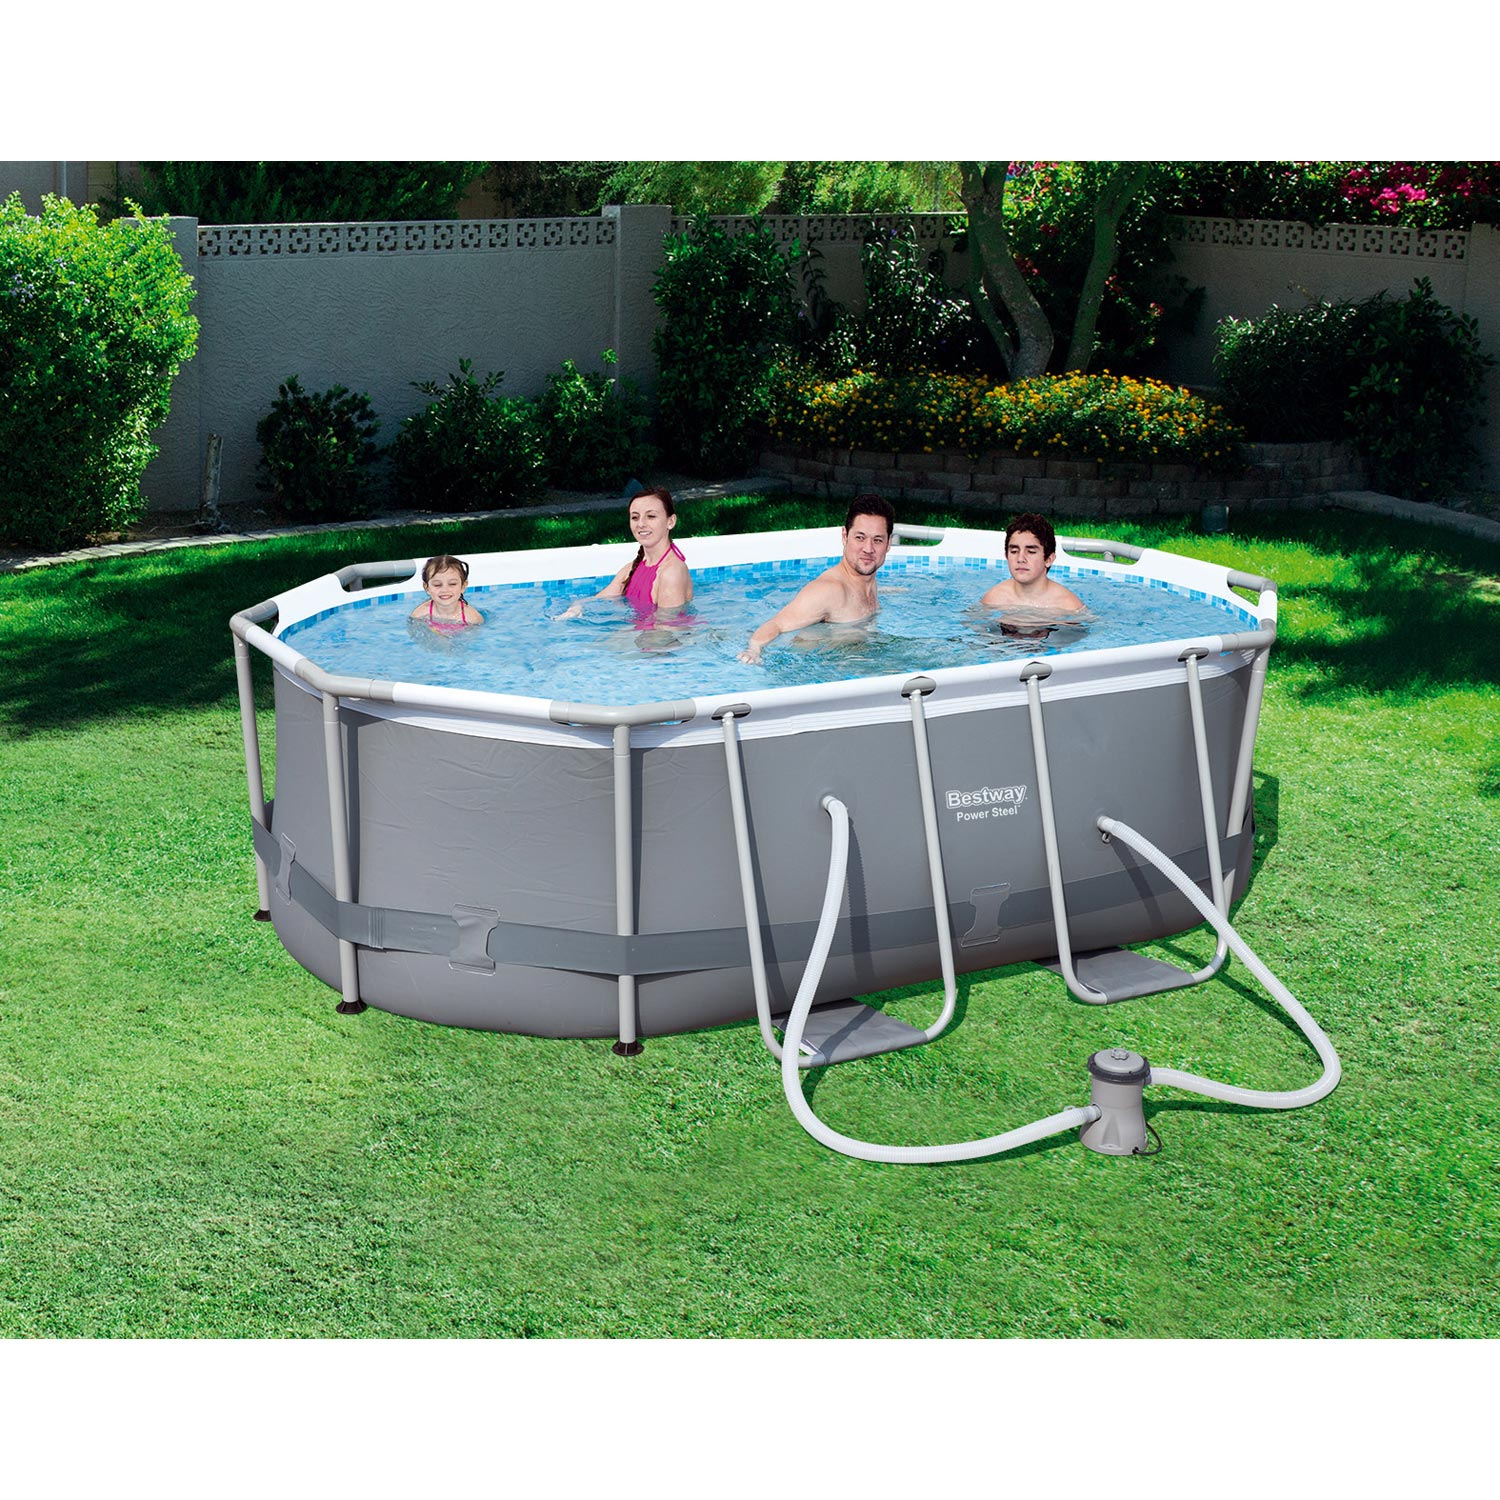 Piscine hors sol autoportante tubulaire bestway l 3 x l 2 for Piscine hors sol declaration